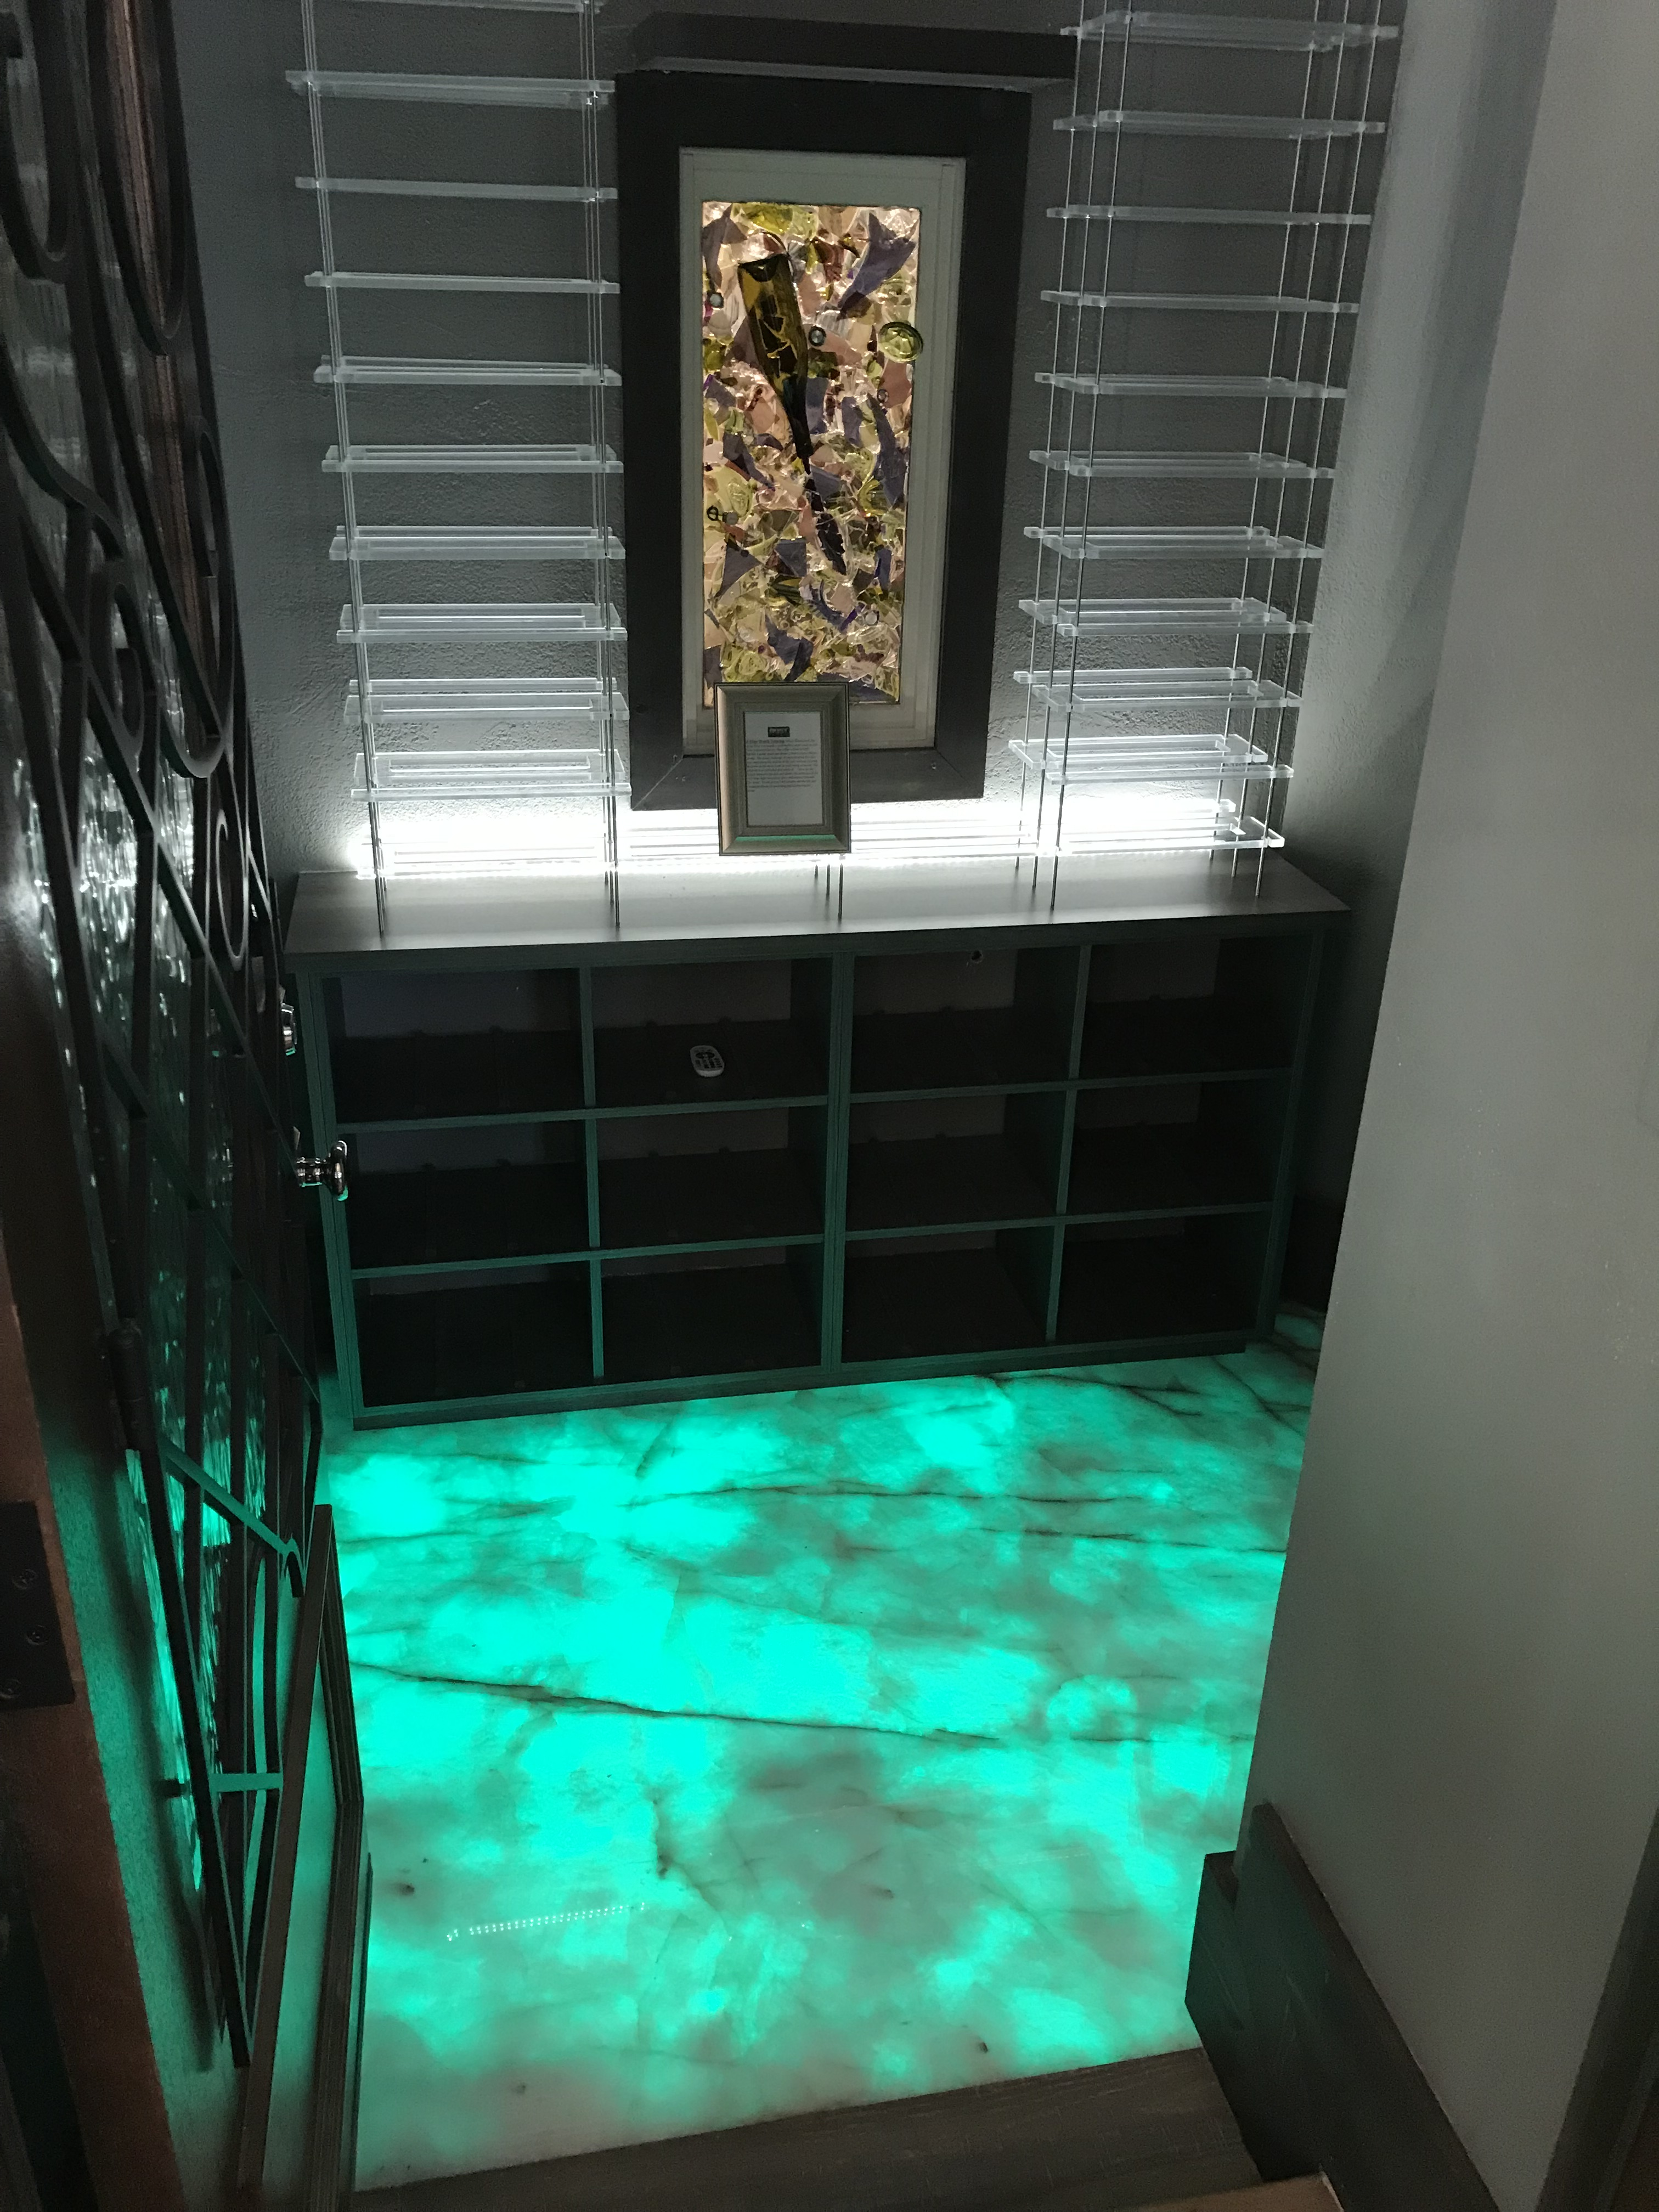 <div class='meta'><div class='origin-logo' data-origin='none'></div><span class='caption-text' data-credit='WTVD Photo/Shawn Replogle'>Wine cellar floor changes colors - 5105 Avalaire Oaks Drive, Raleigh, NC - $3.2 million by Bost Custom Homes</span></div>